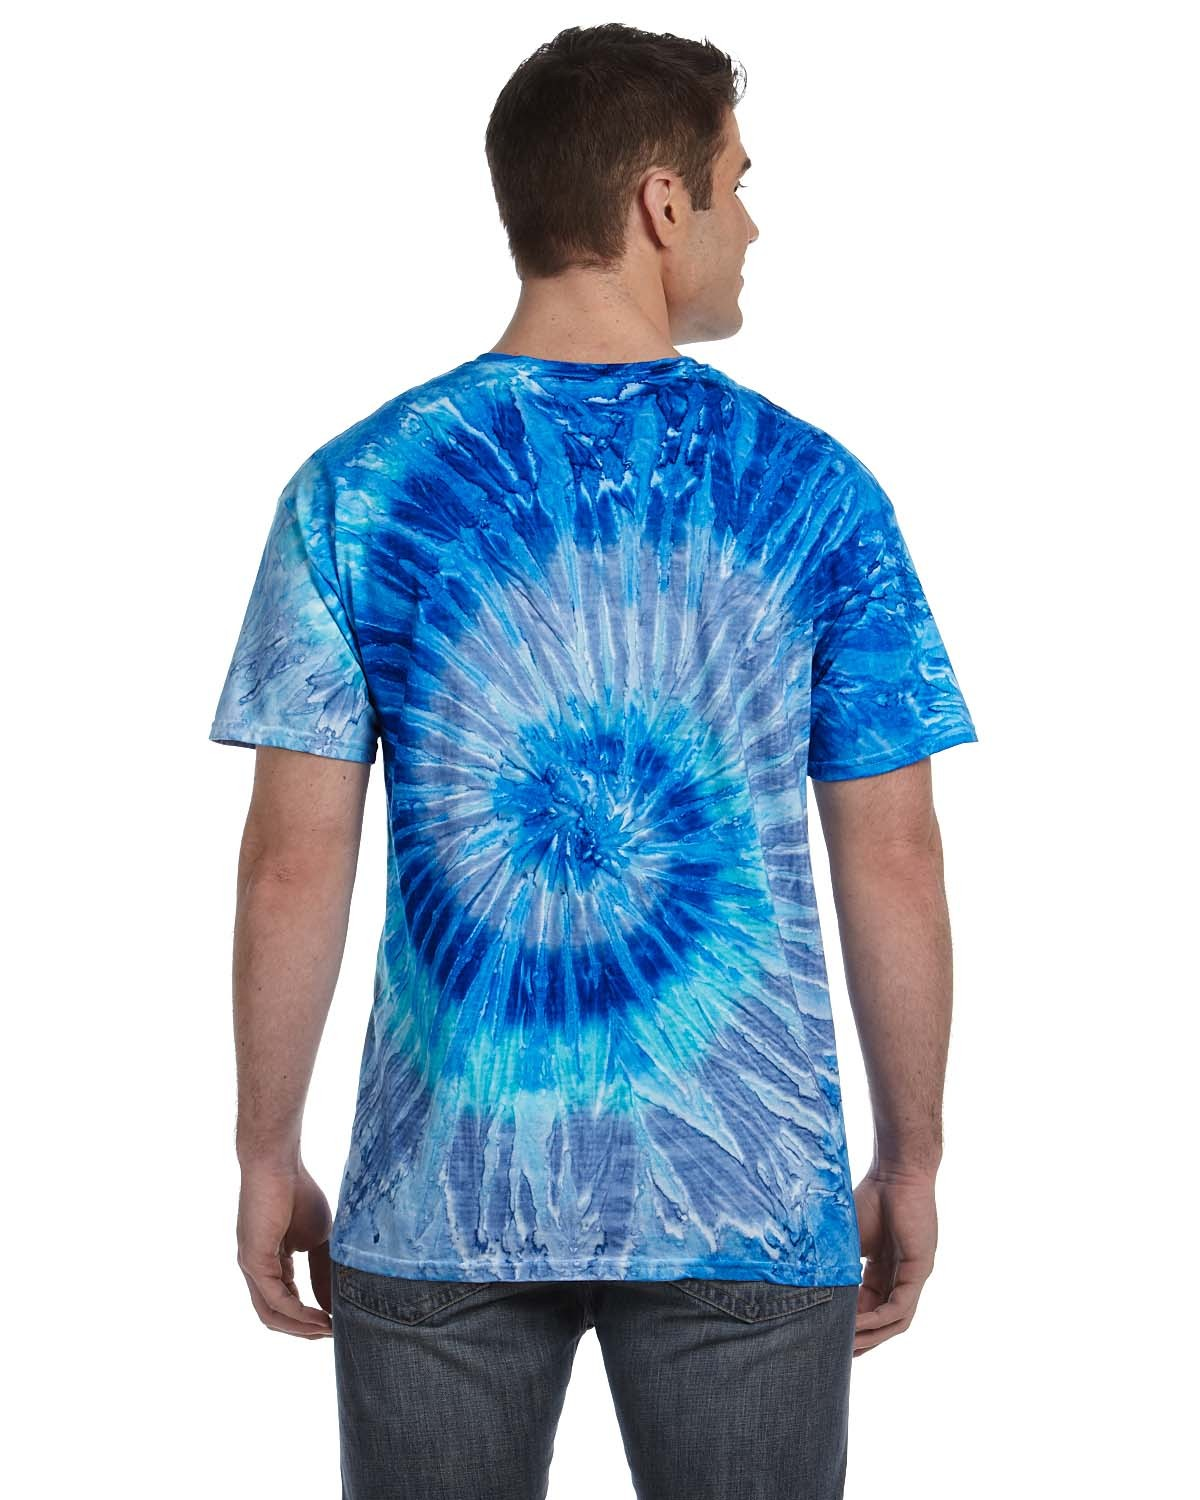 CD100 Tie-Dye BLUE JERRY